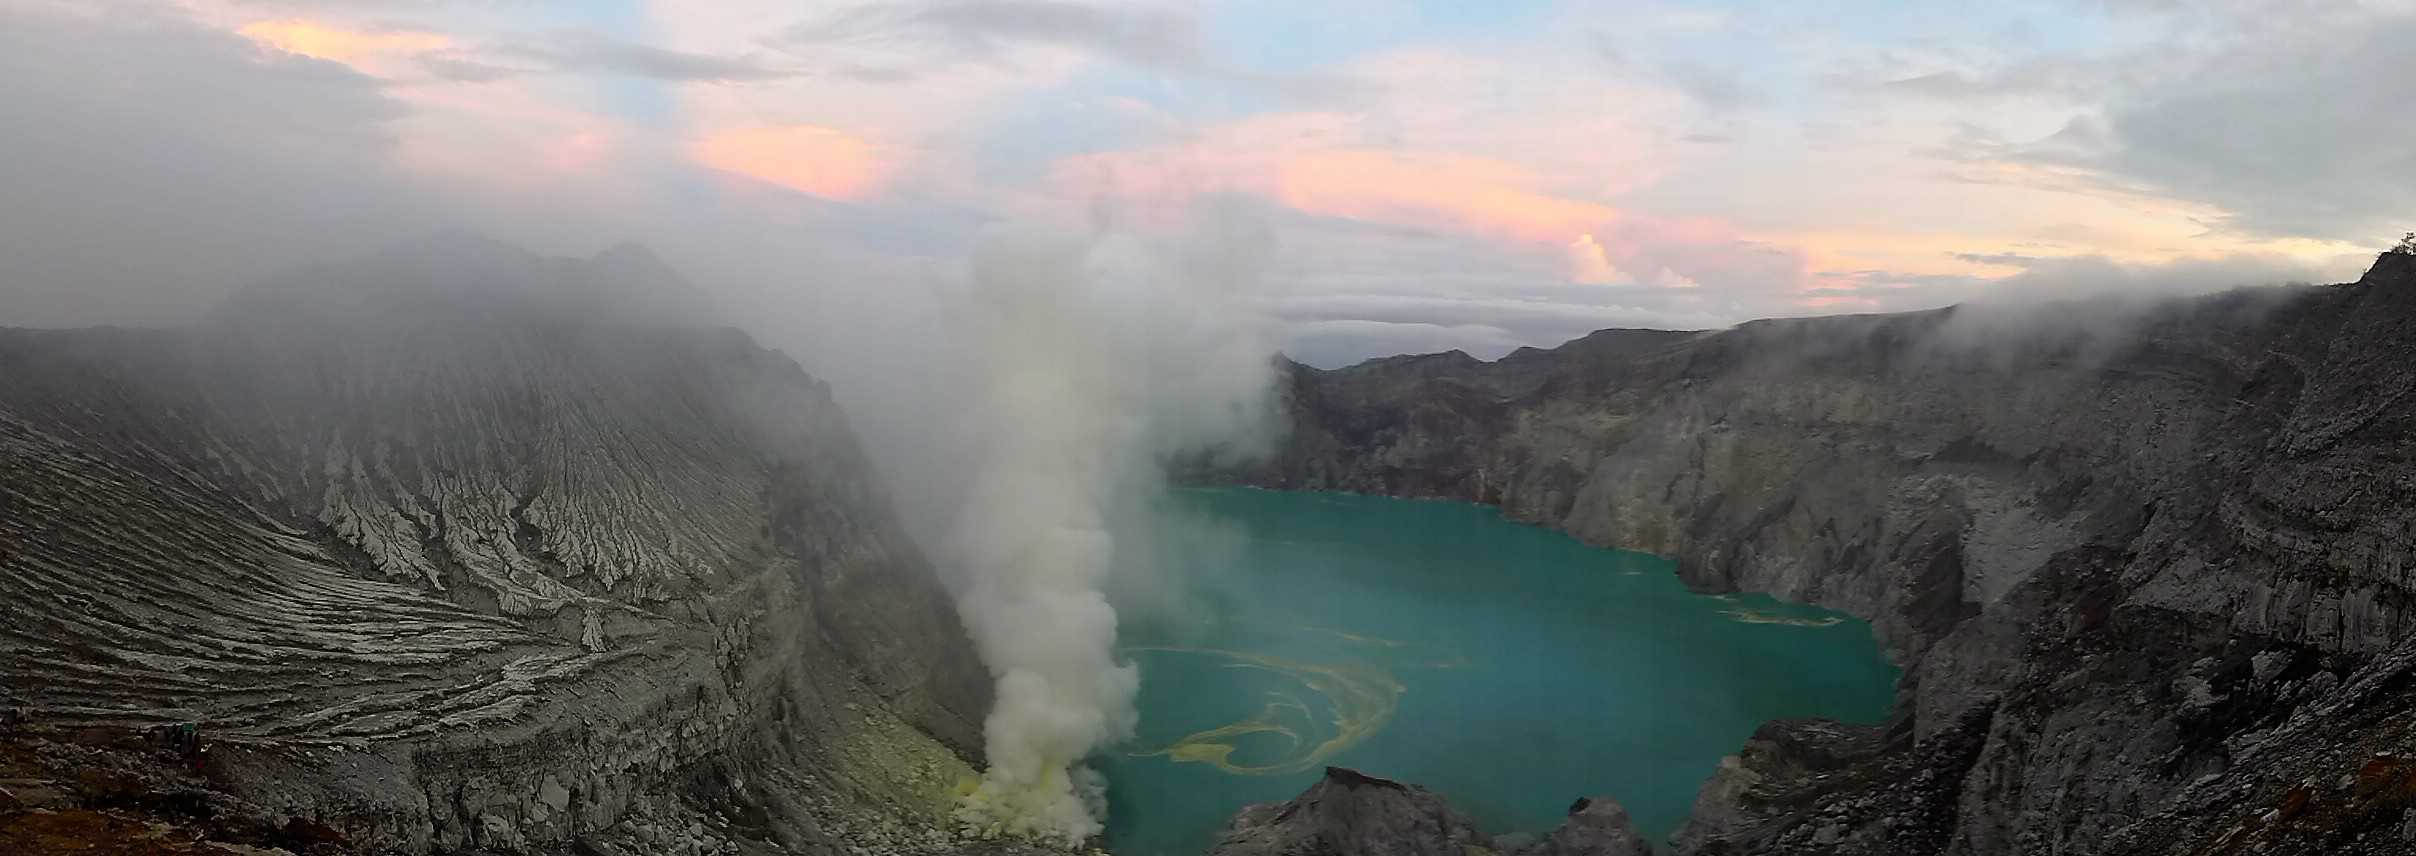 wulkany w Indonezji, Ijen, treking w Indonezji